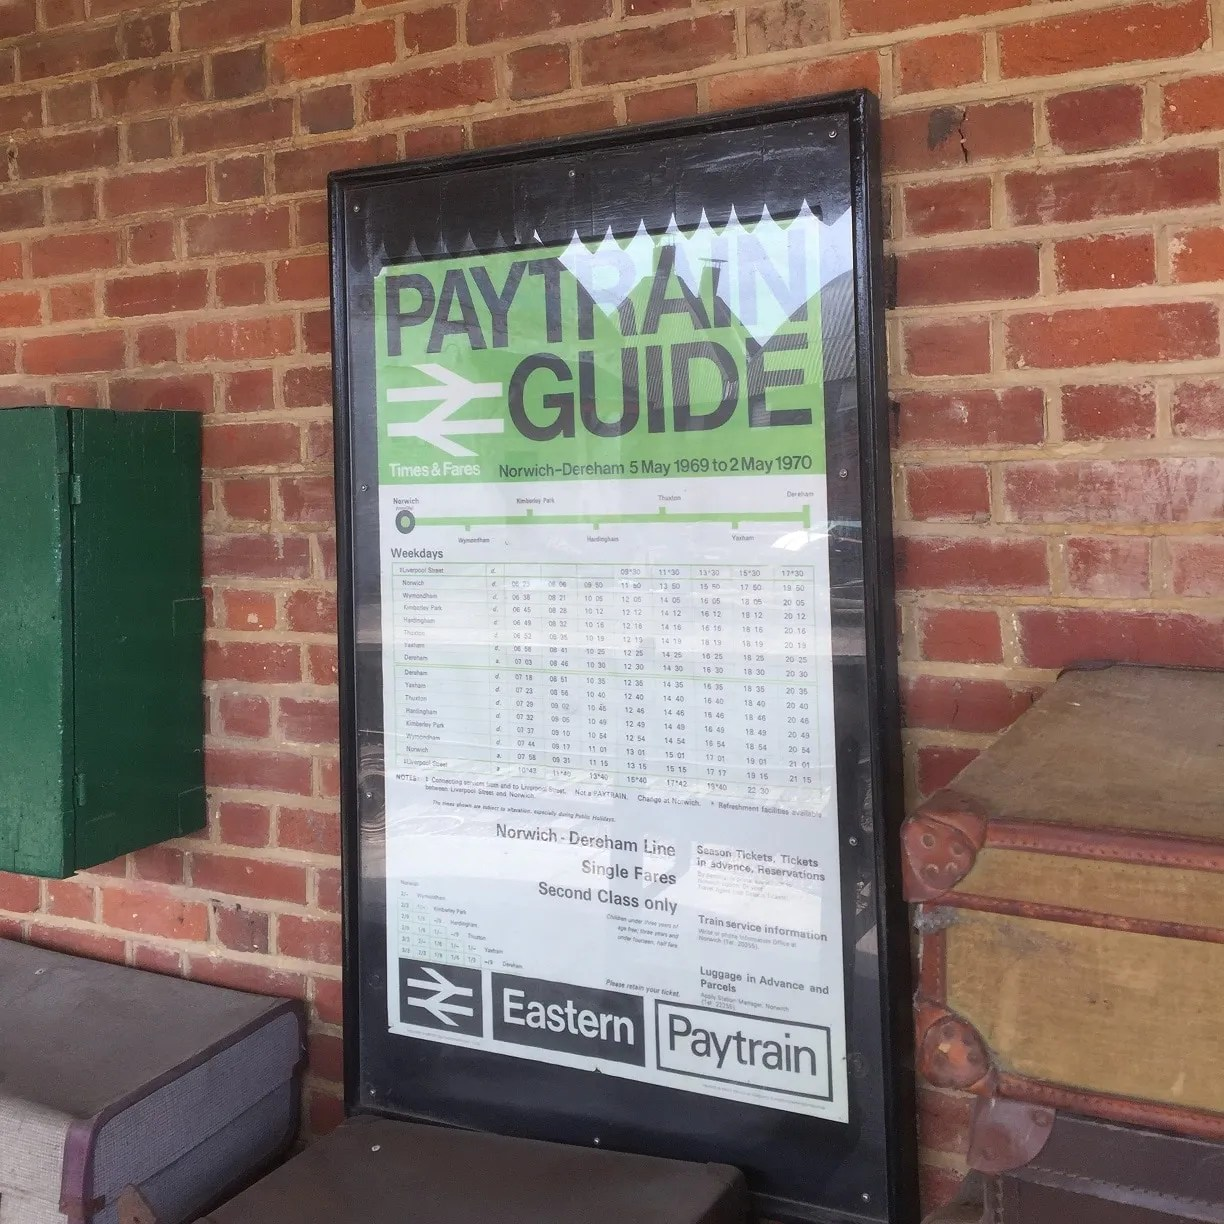 British Rail Pay train guide poster from 1970